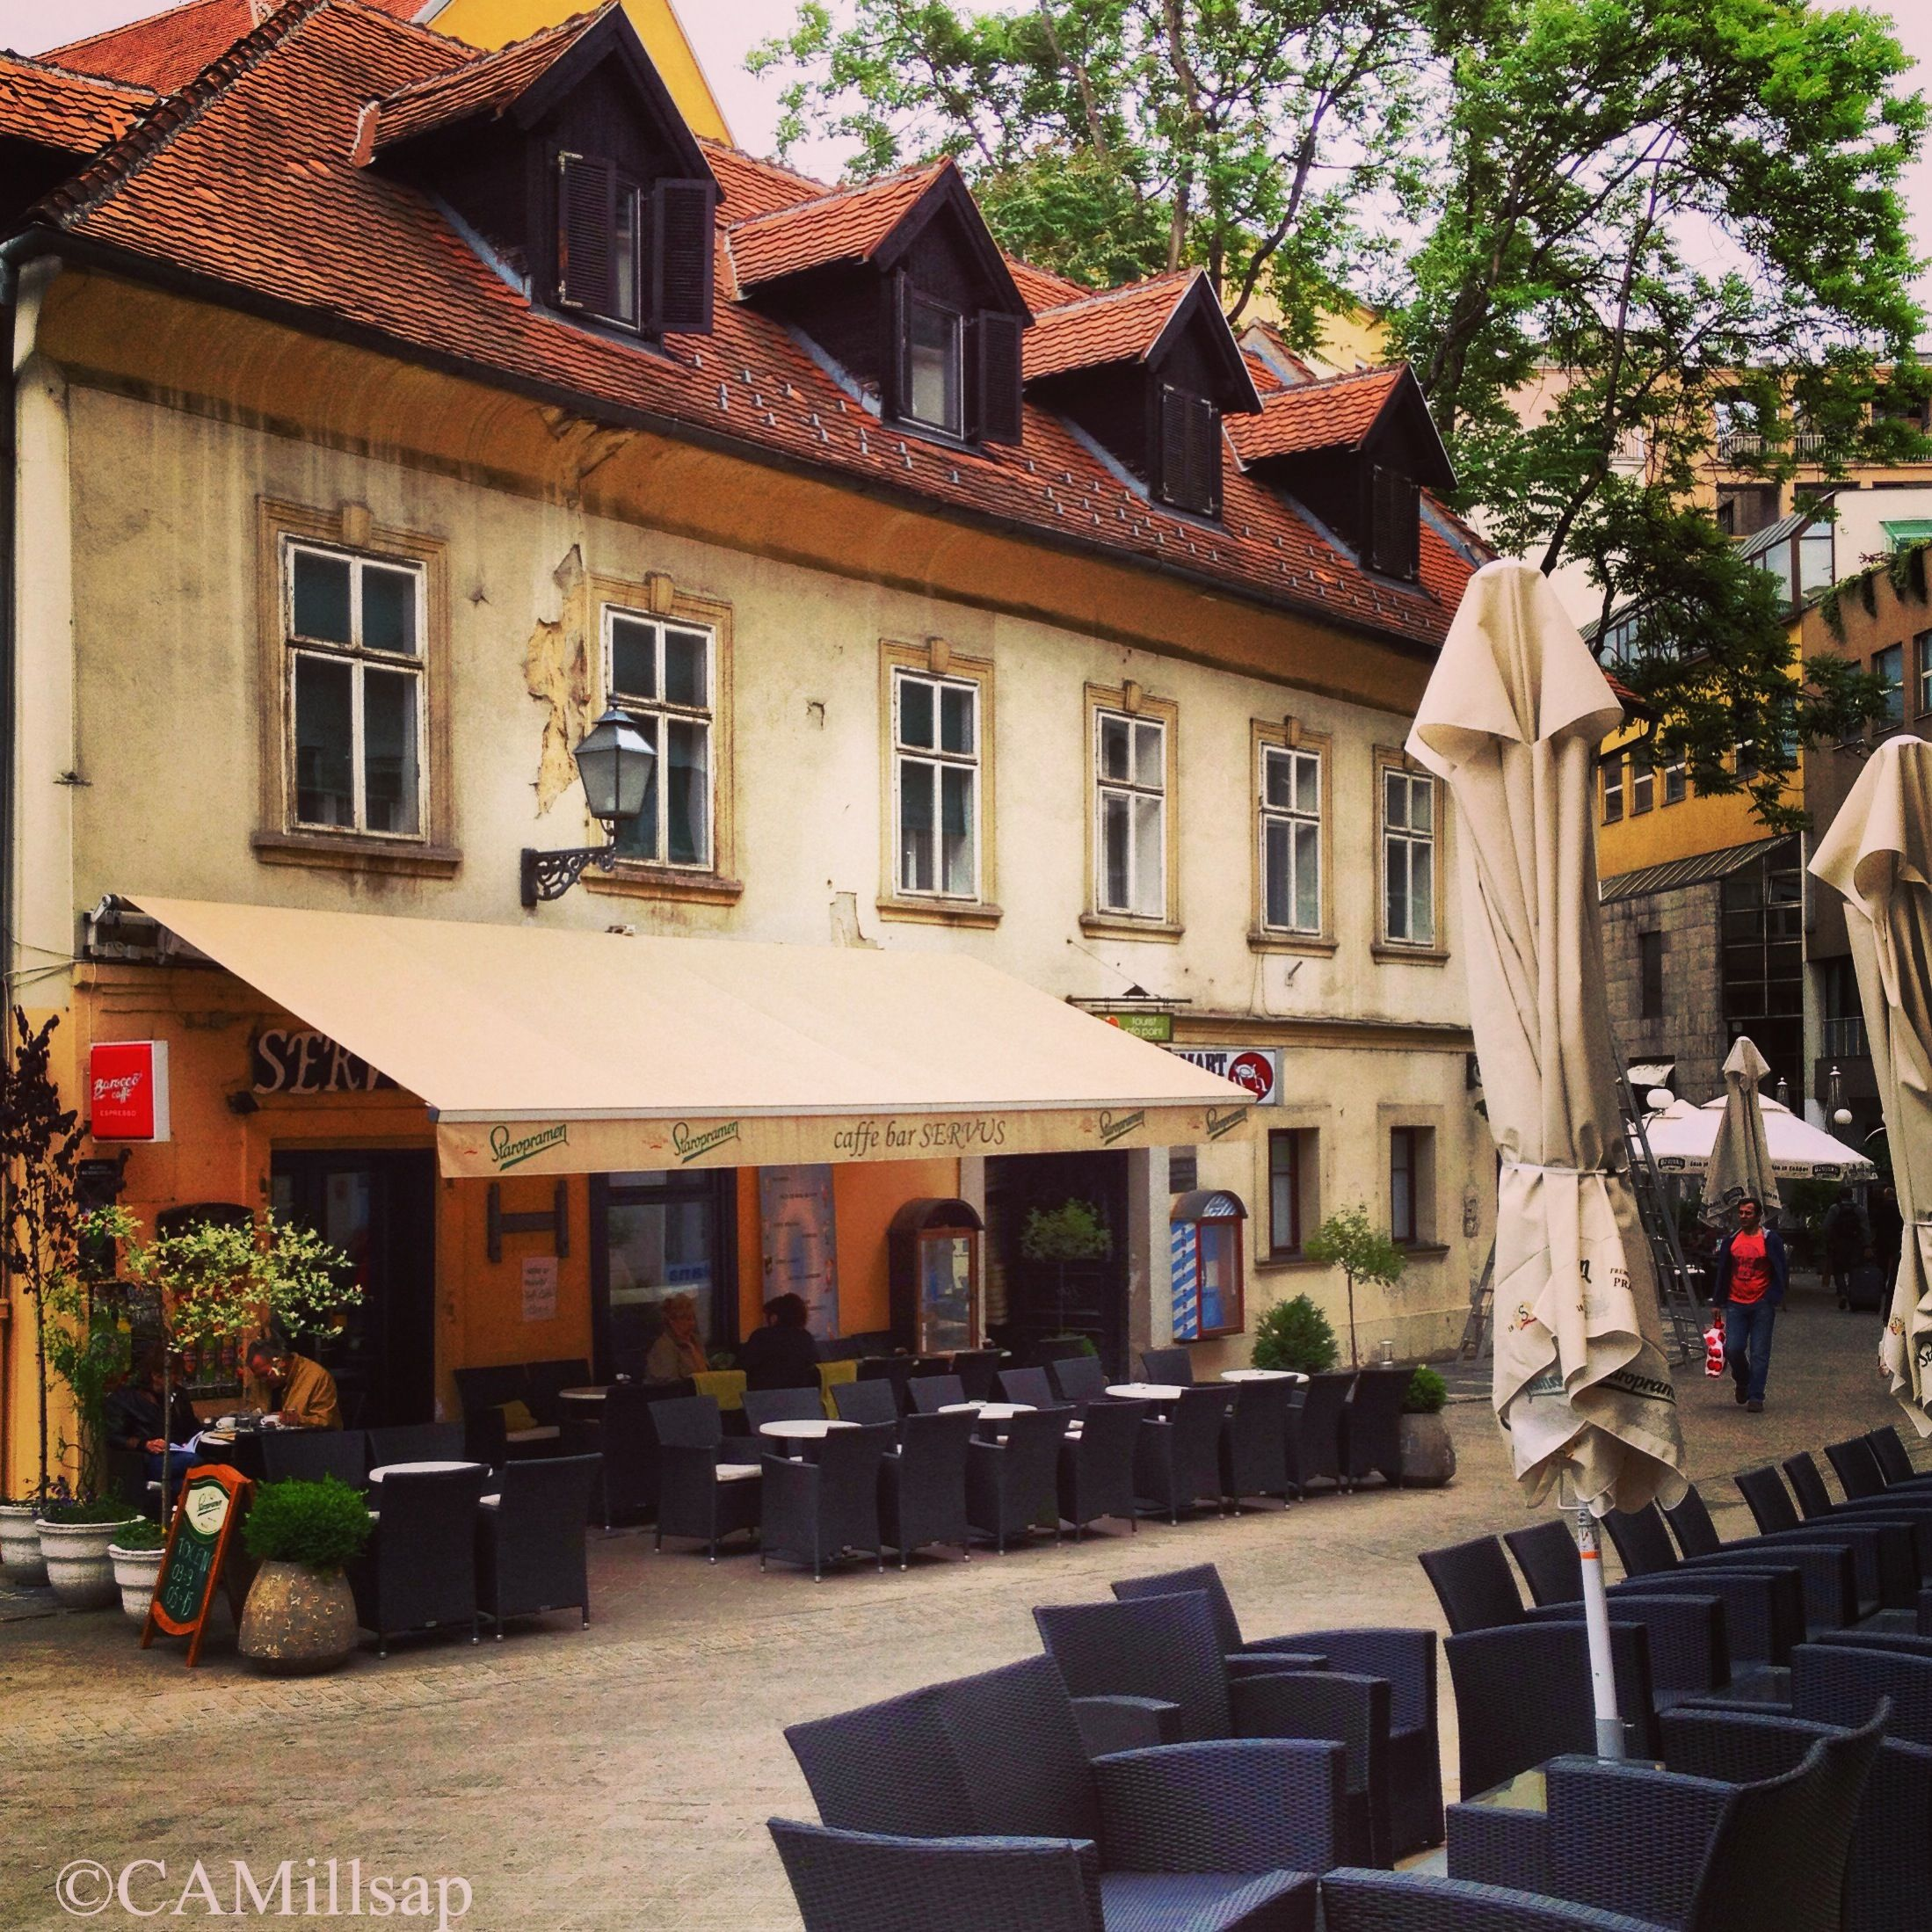 Coffee Culture Rules In Zagreb Sidewalk Cafes Are Popular Spots For Those Who Want To Sit And Sip The Afternoon Away Croatia Tours Croatia Zagreb